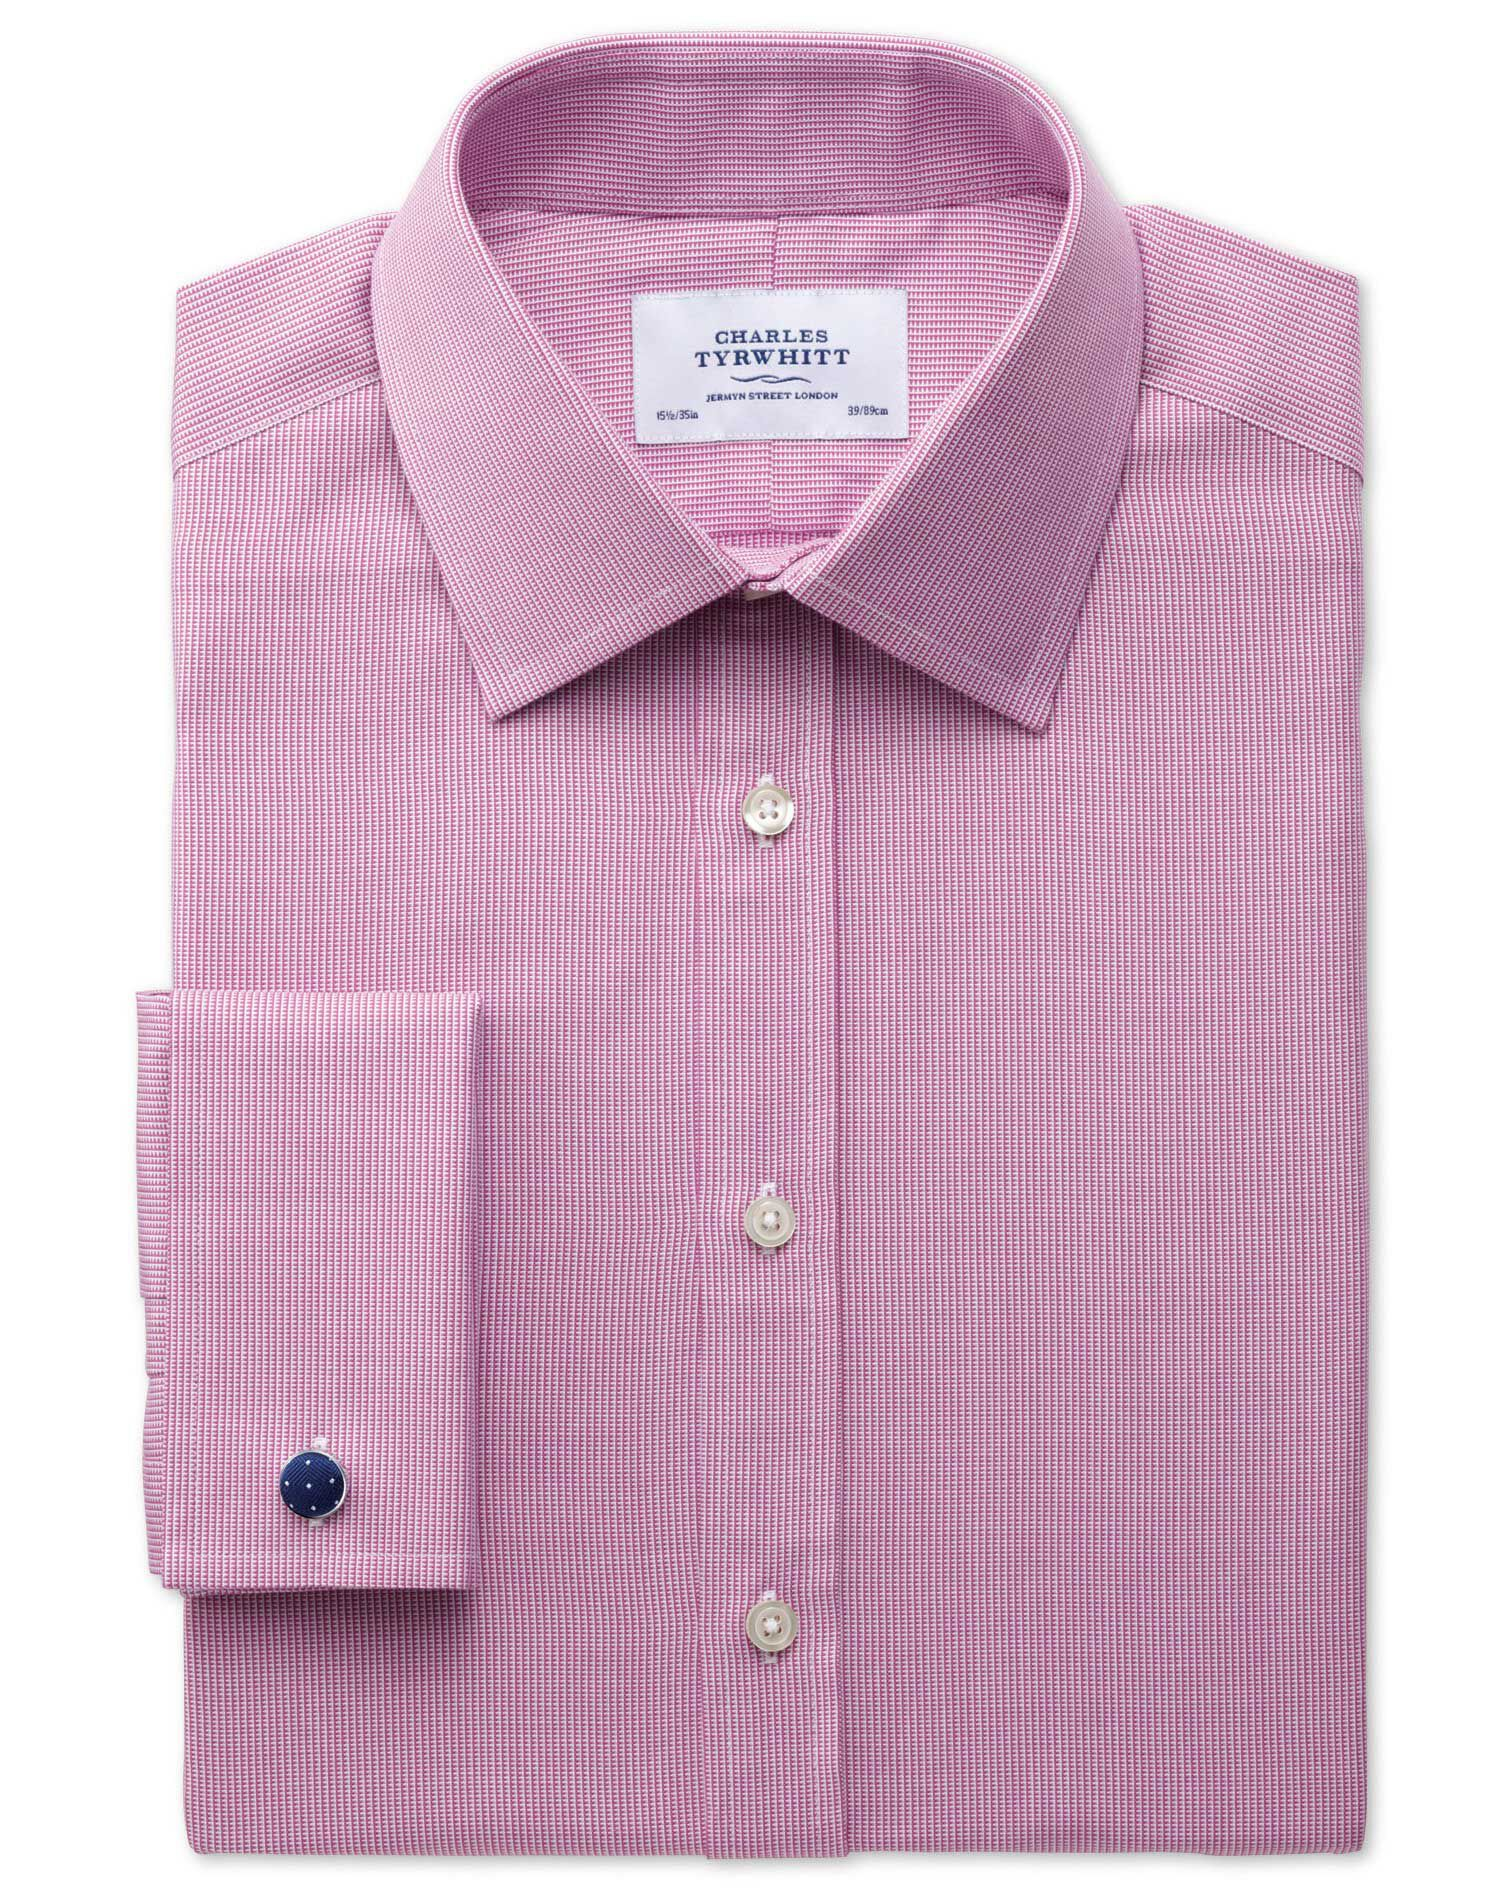 Extra Slim Fit Oxford Magenta Cotton Formal Shirt Double Cuff Size 17.5/34 by Charles Tyrwhitt